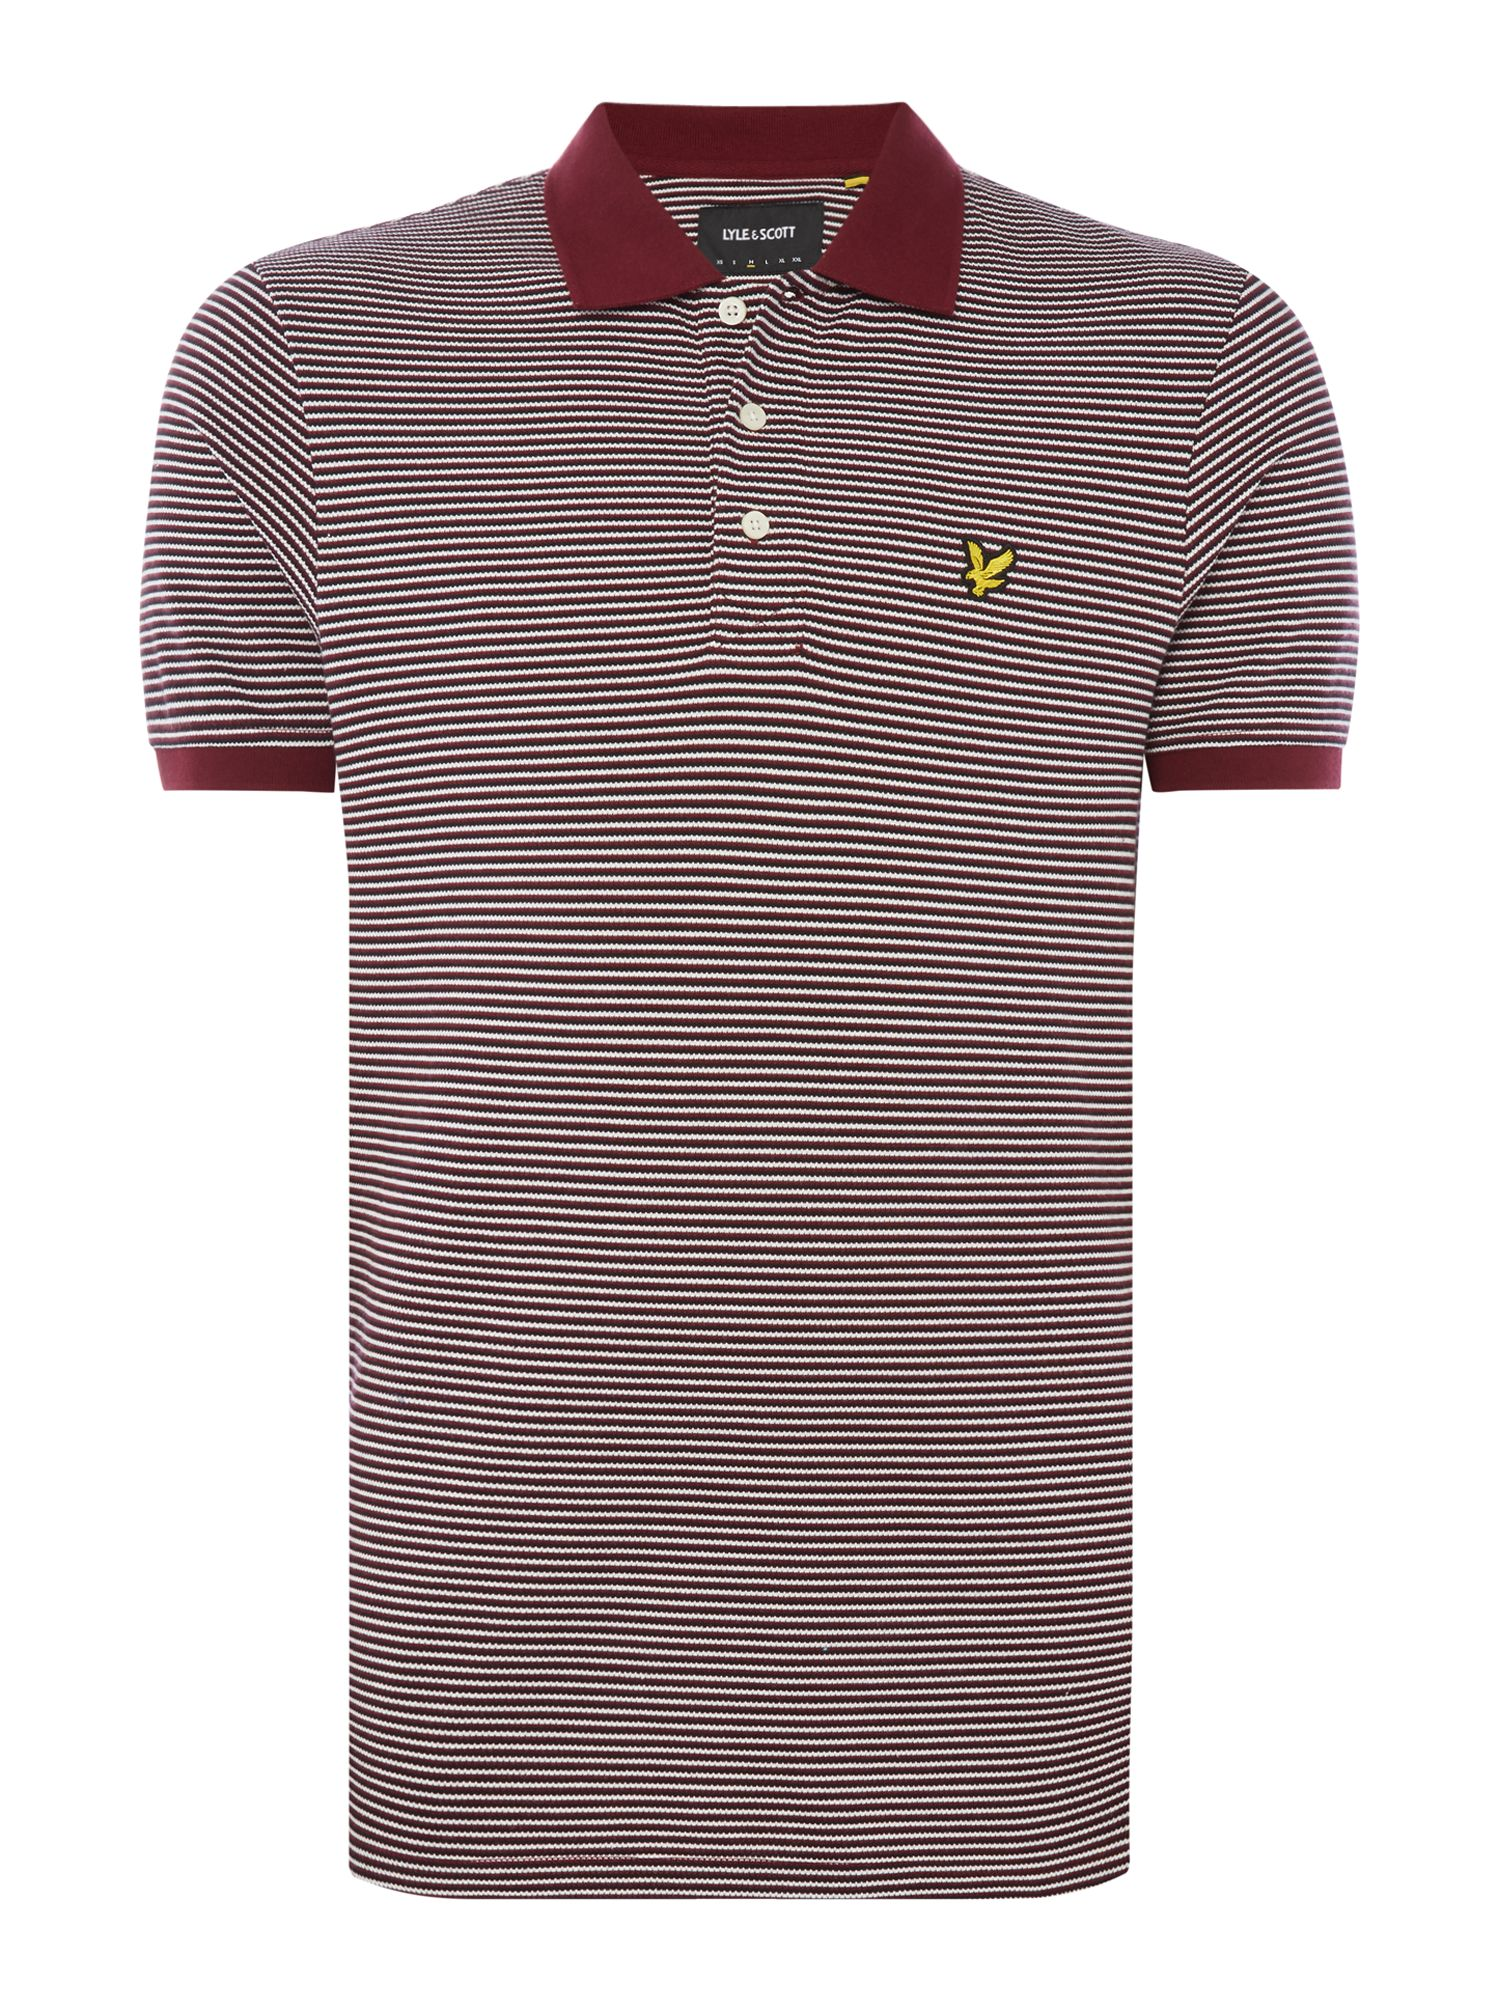 Men's Lyle and Scott Feeder Stripe Short-Sleeve Polo Shirt, Claret